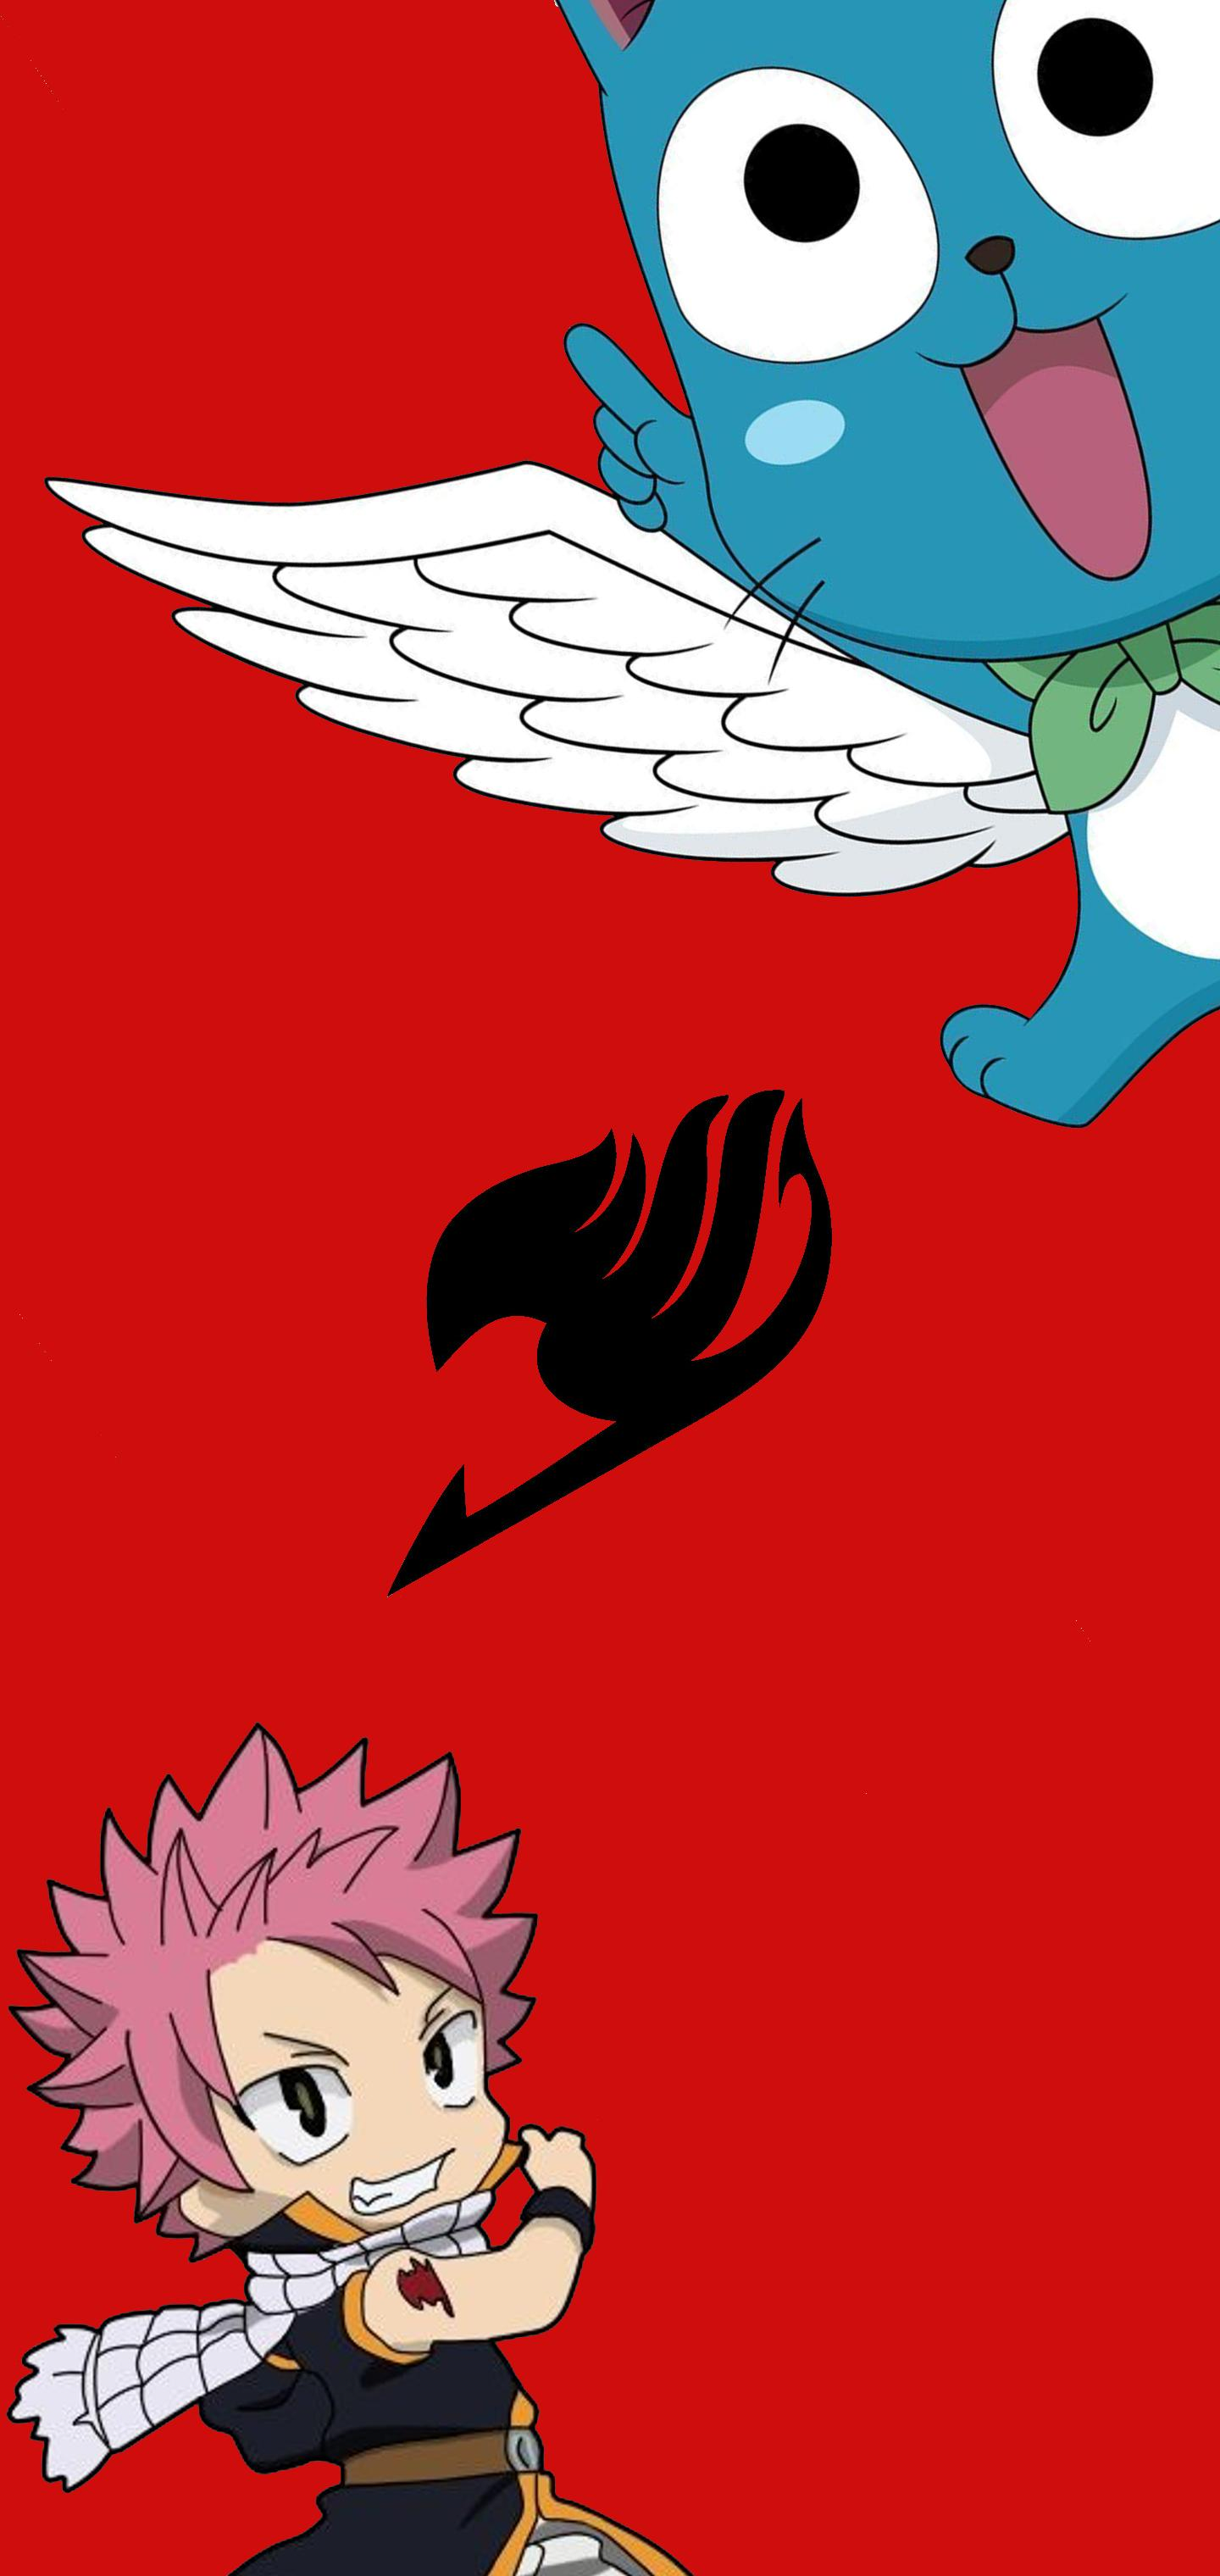 Cute Fairy Tail Wallpaper : fairy, wallpaper, Fairy, Oneaznonly, Galaxy, Hole-Punch, Wallpaper